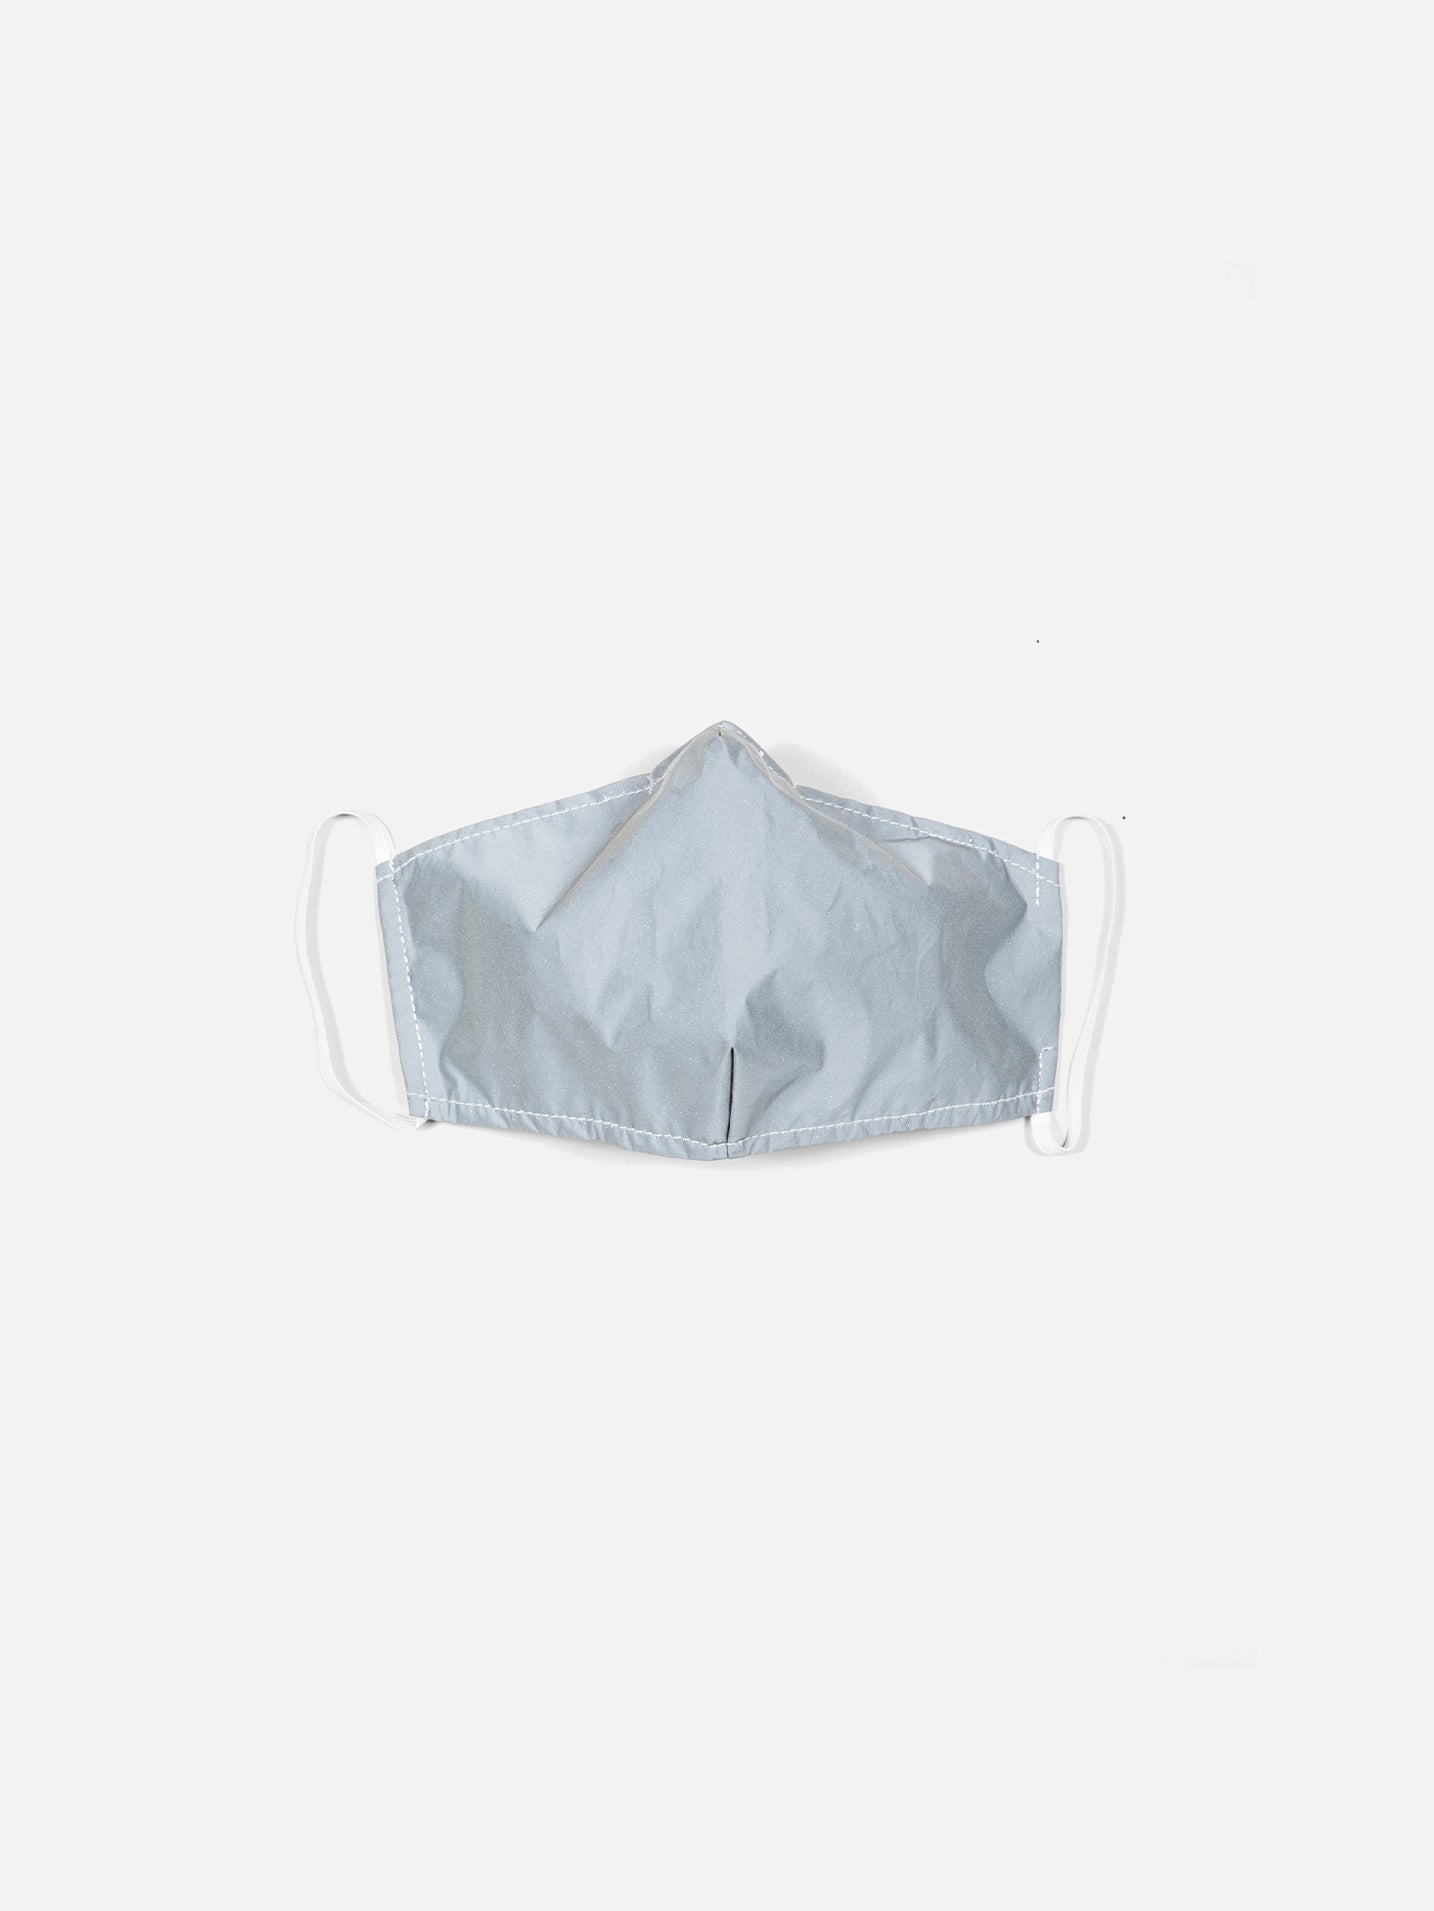 3M Reflective Reusable Face Mask